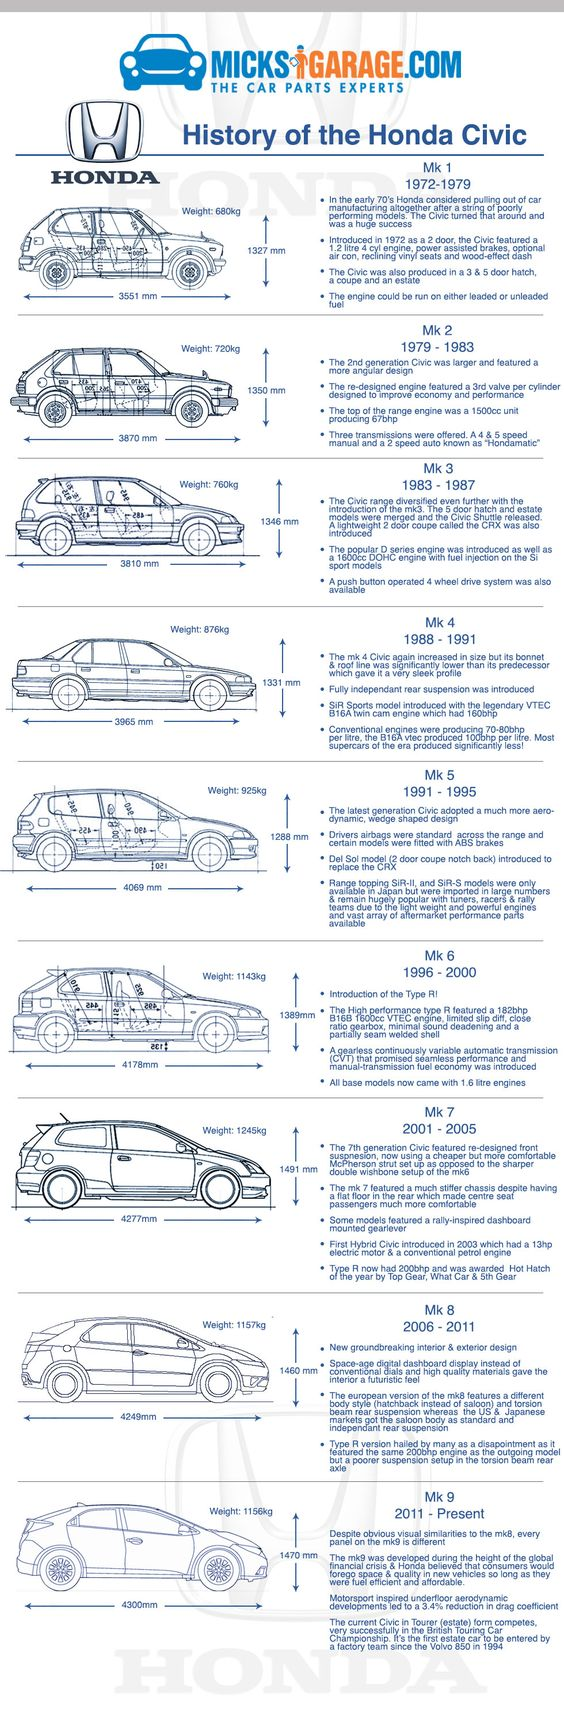 History of the Honda Civic. One of the best loved and best selling cars in the world! By the team at www.micksgarage.com